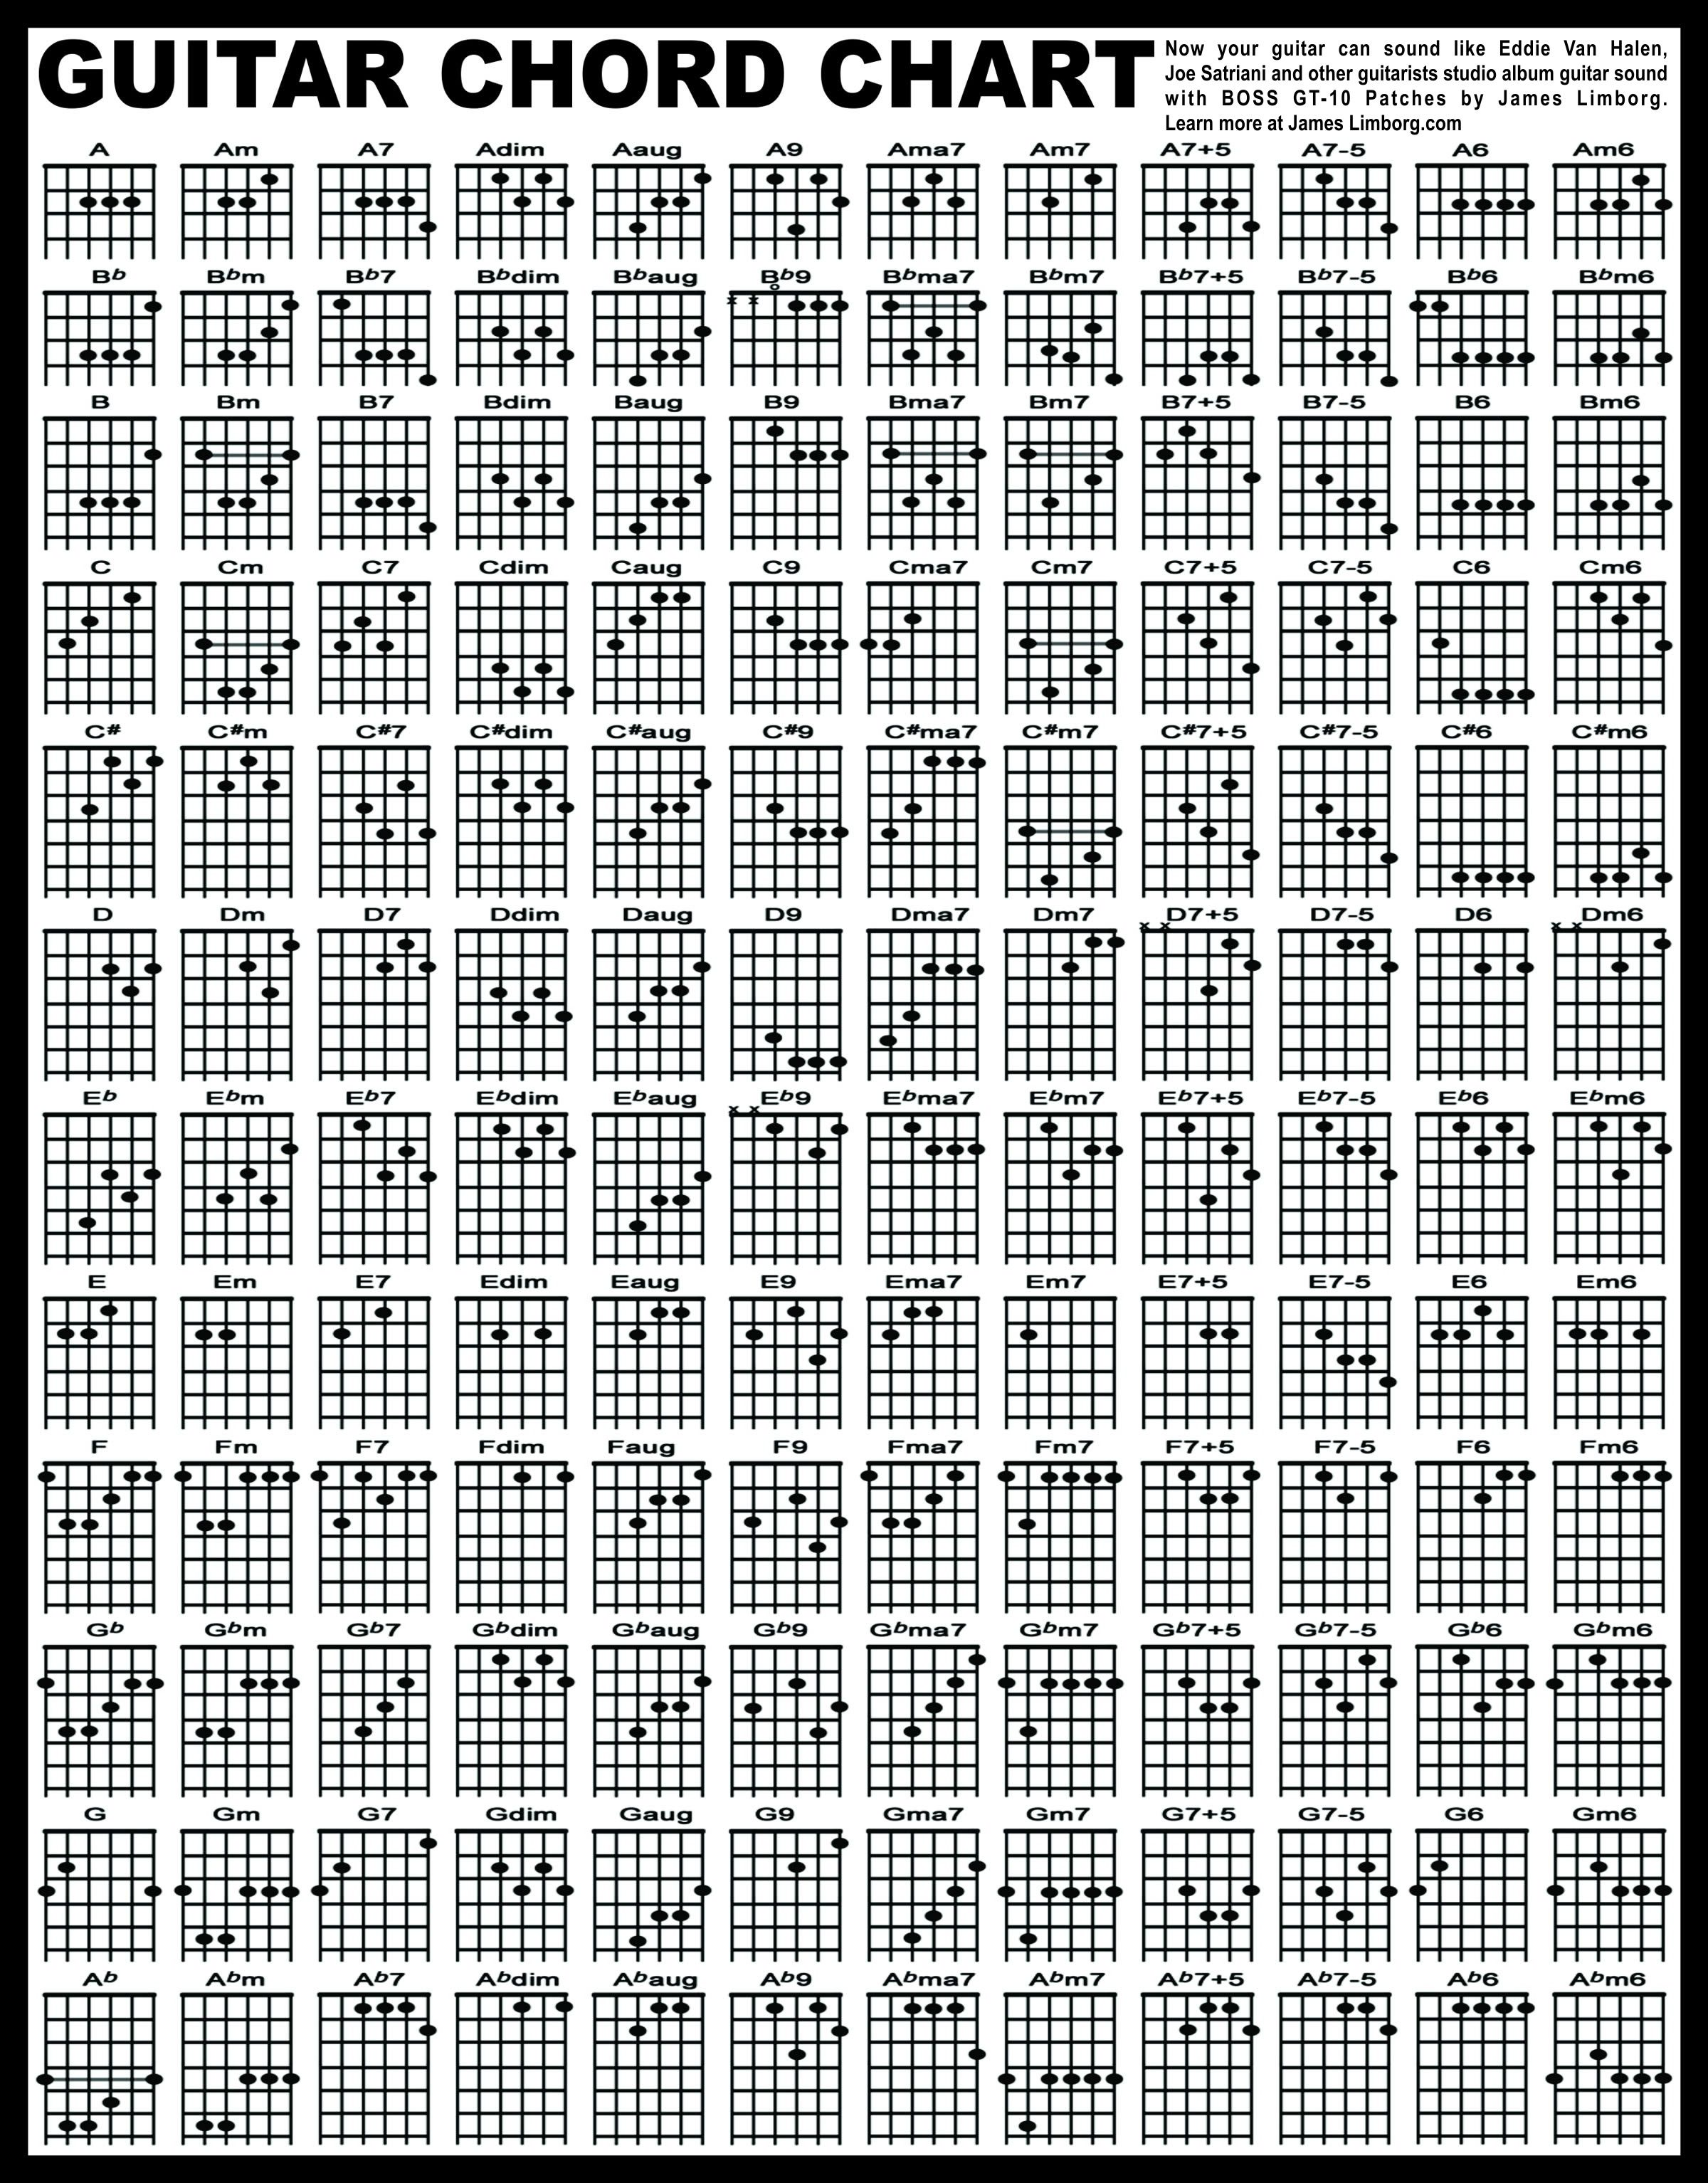 Pin By Victor Del Rio On Home Sections Pinterest Guitar Chord